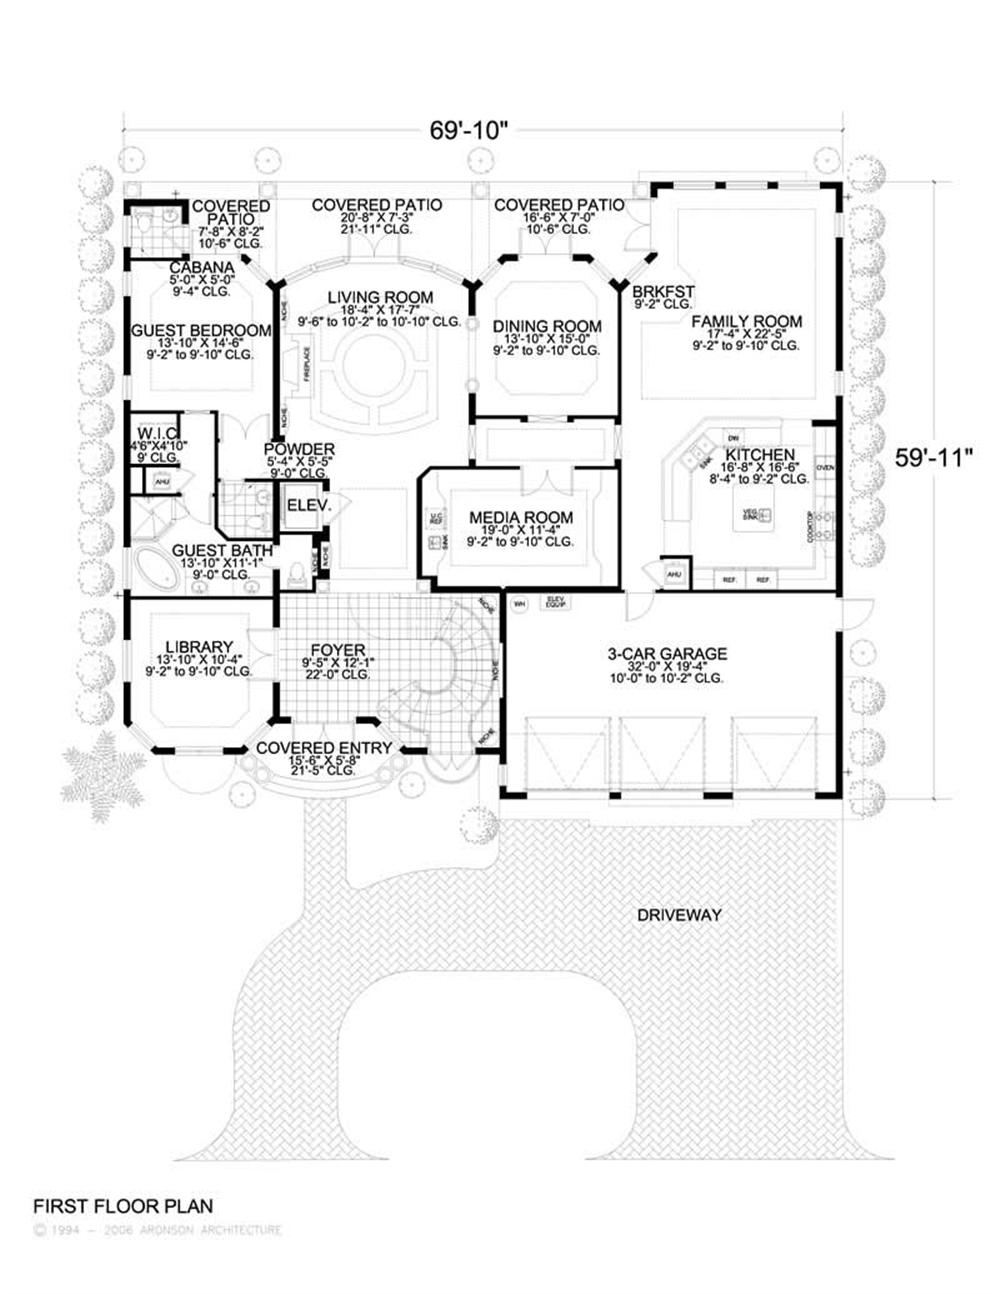 HOME PLAN AA MAIN FLOOR PLAN